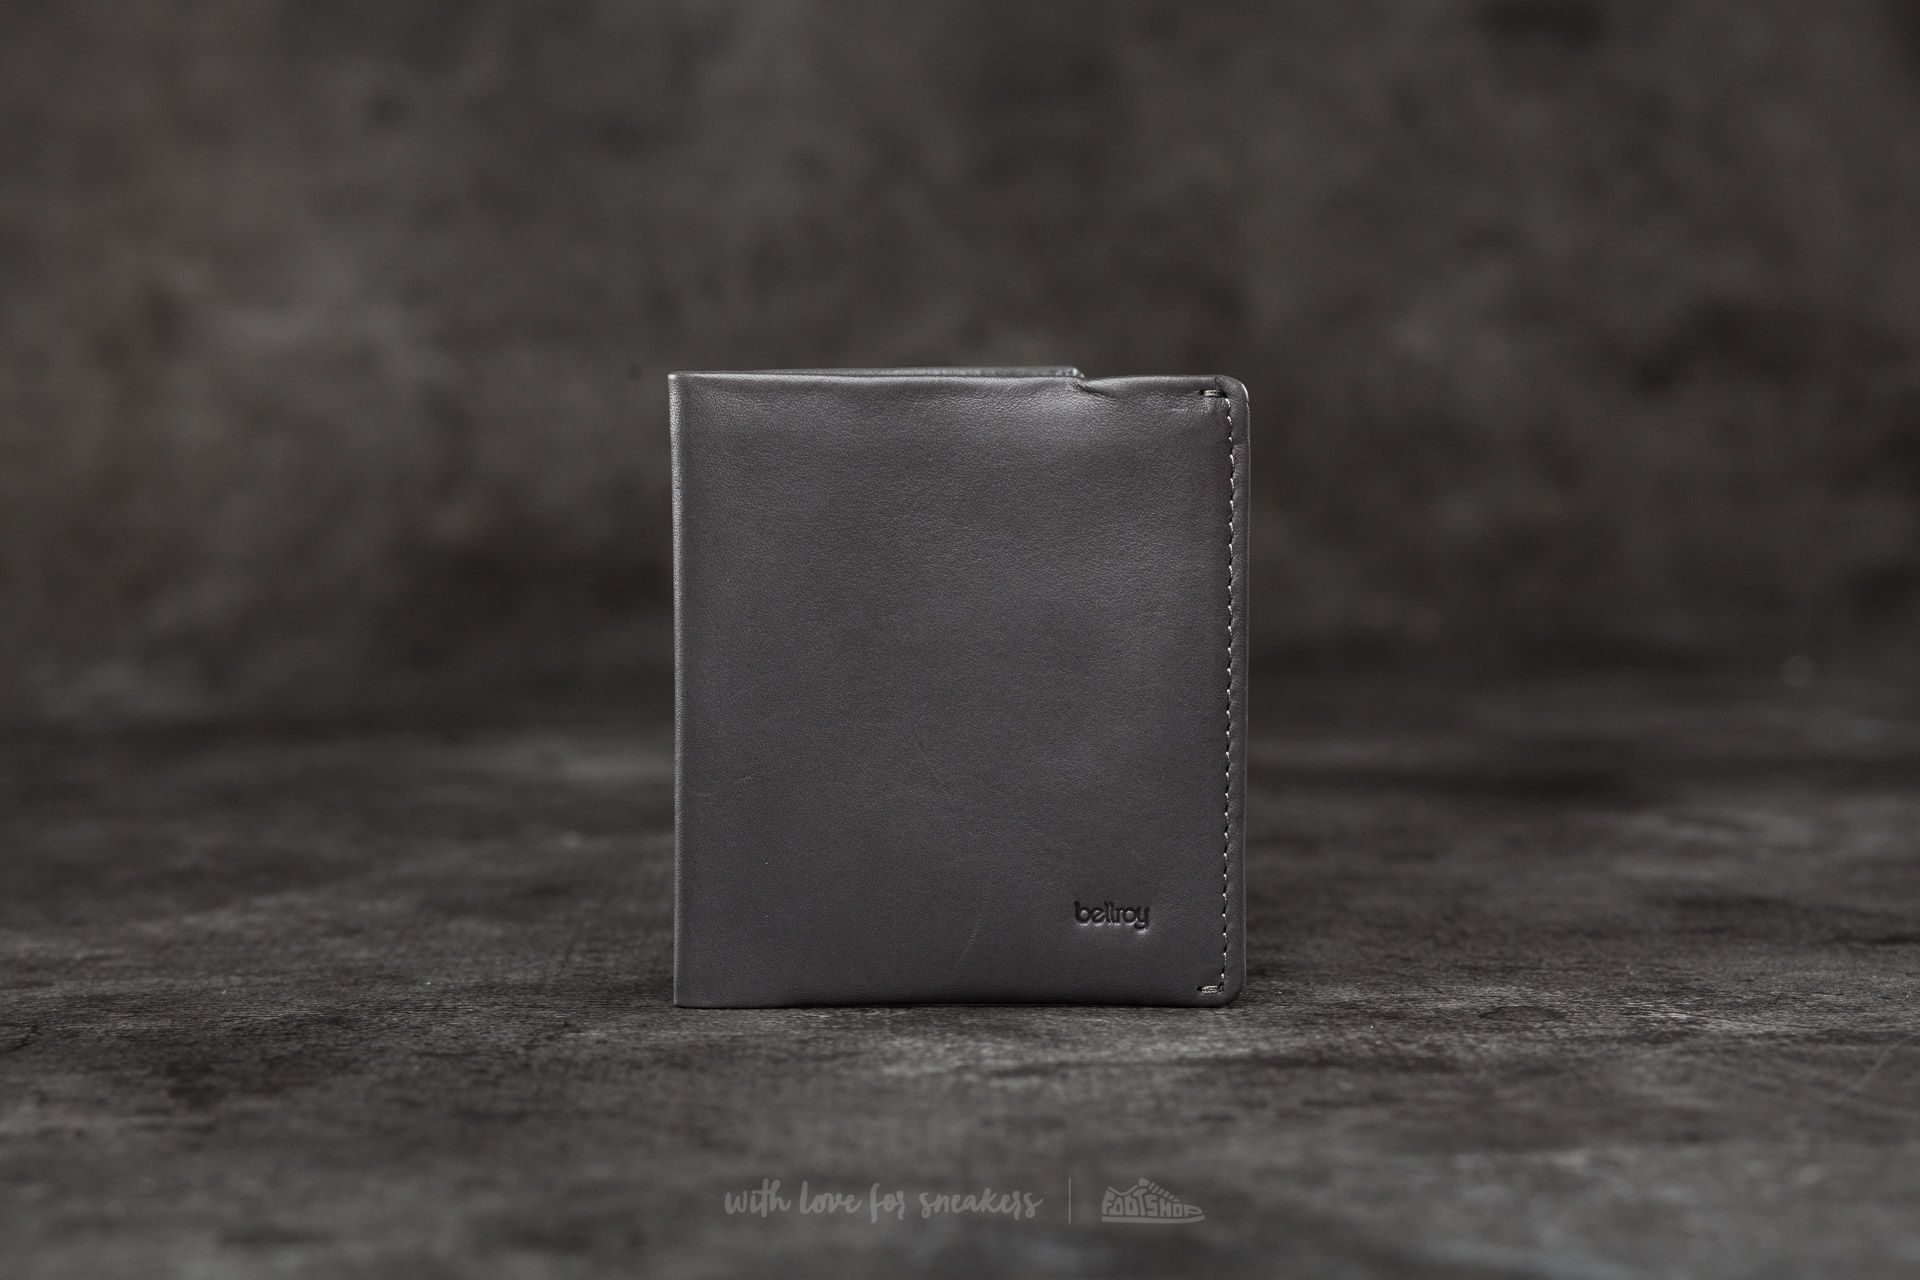 Bellroy Note Sleeve Wallet Charcoal - 12270